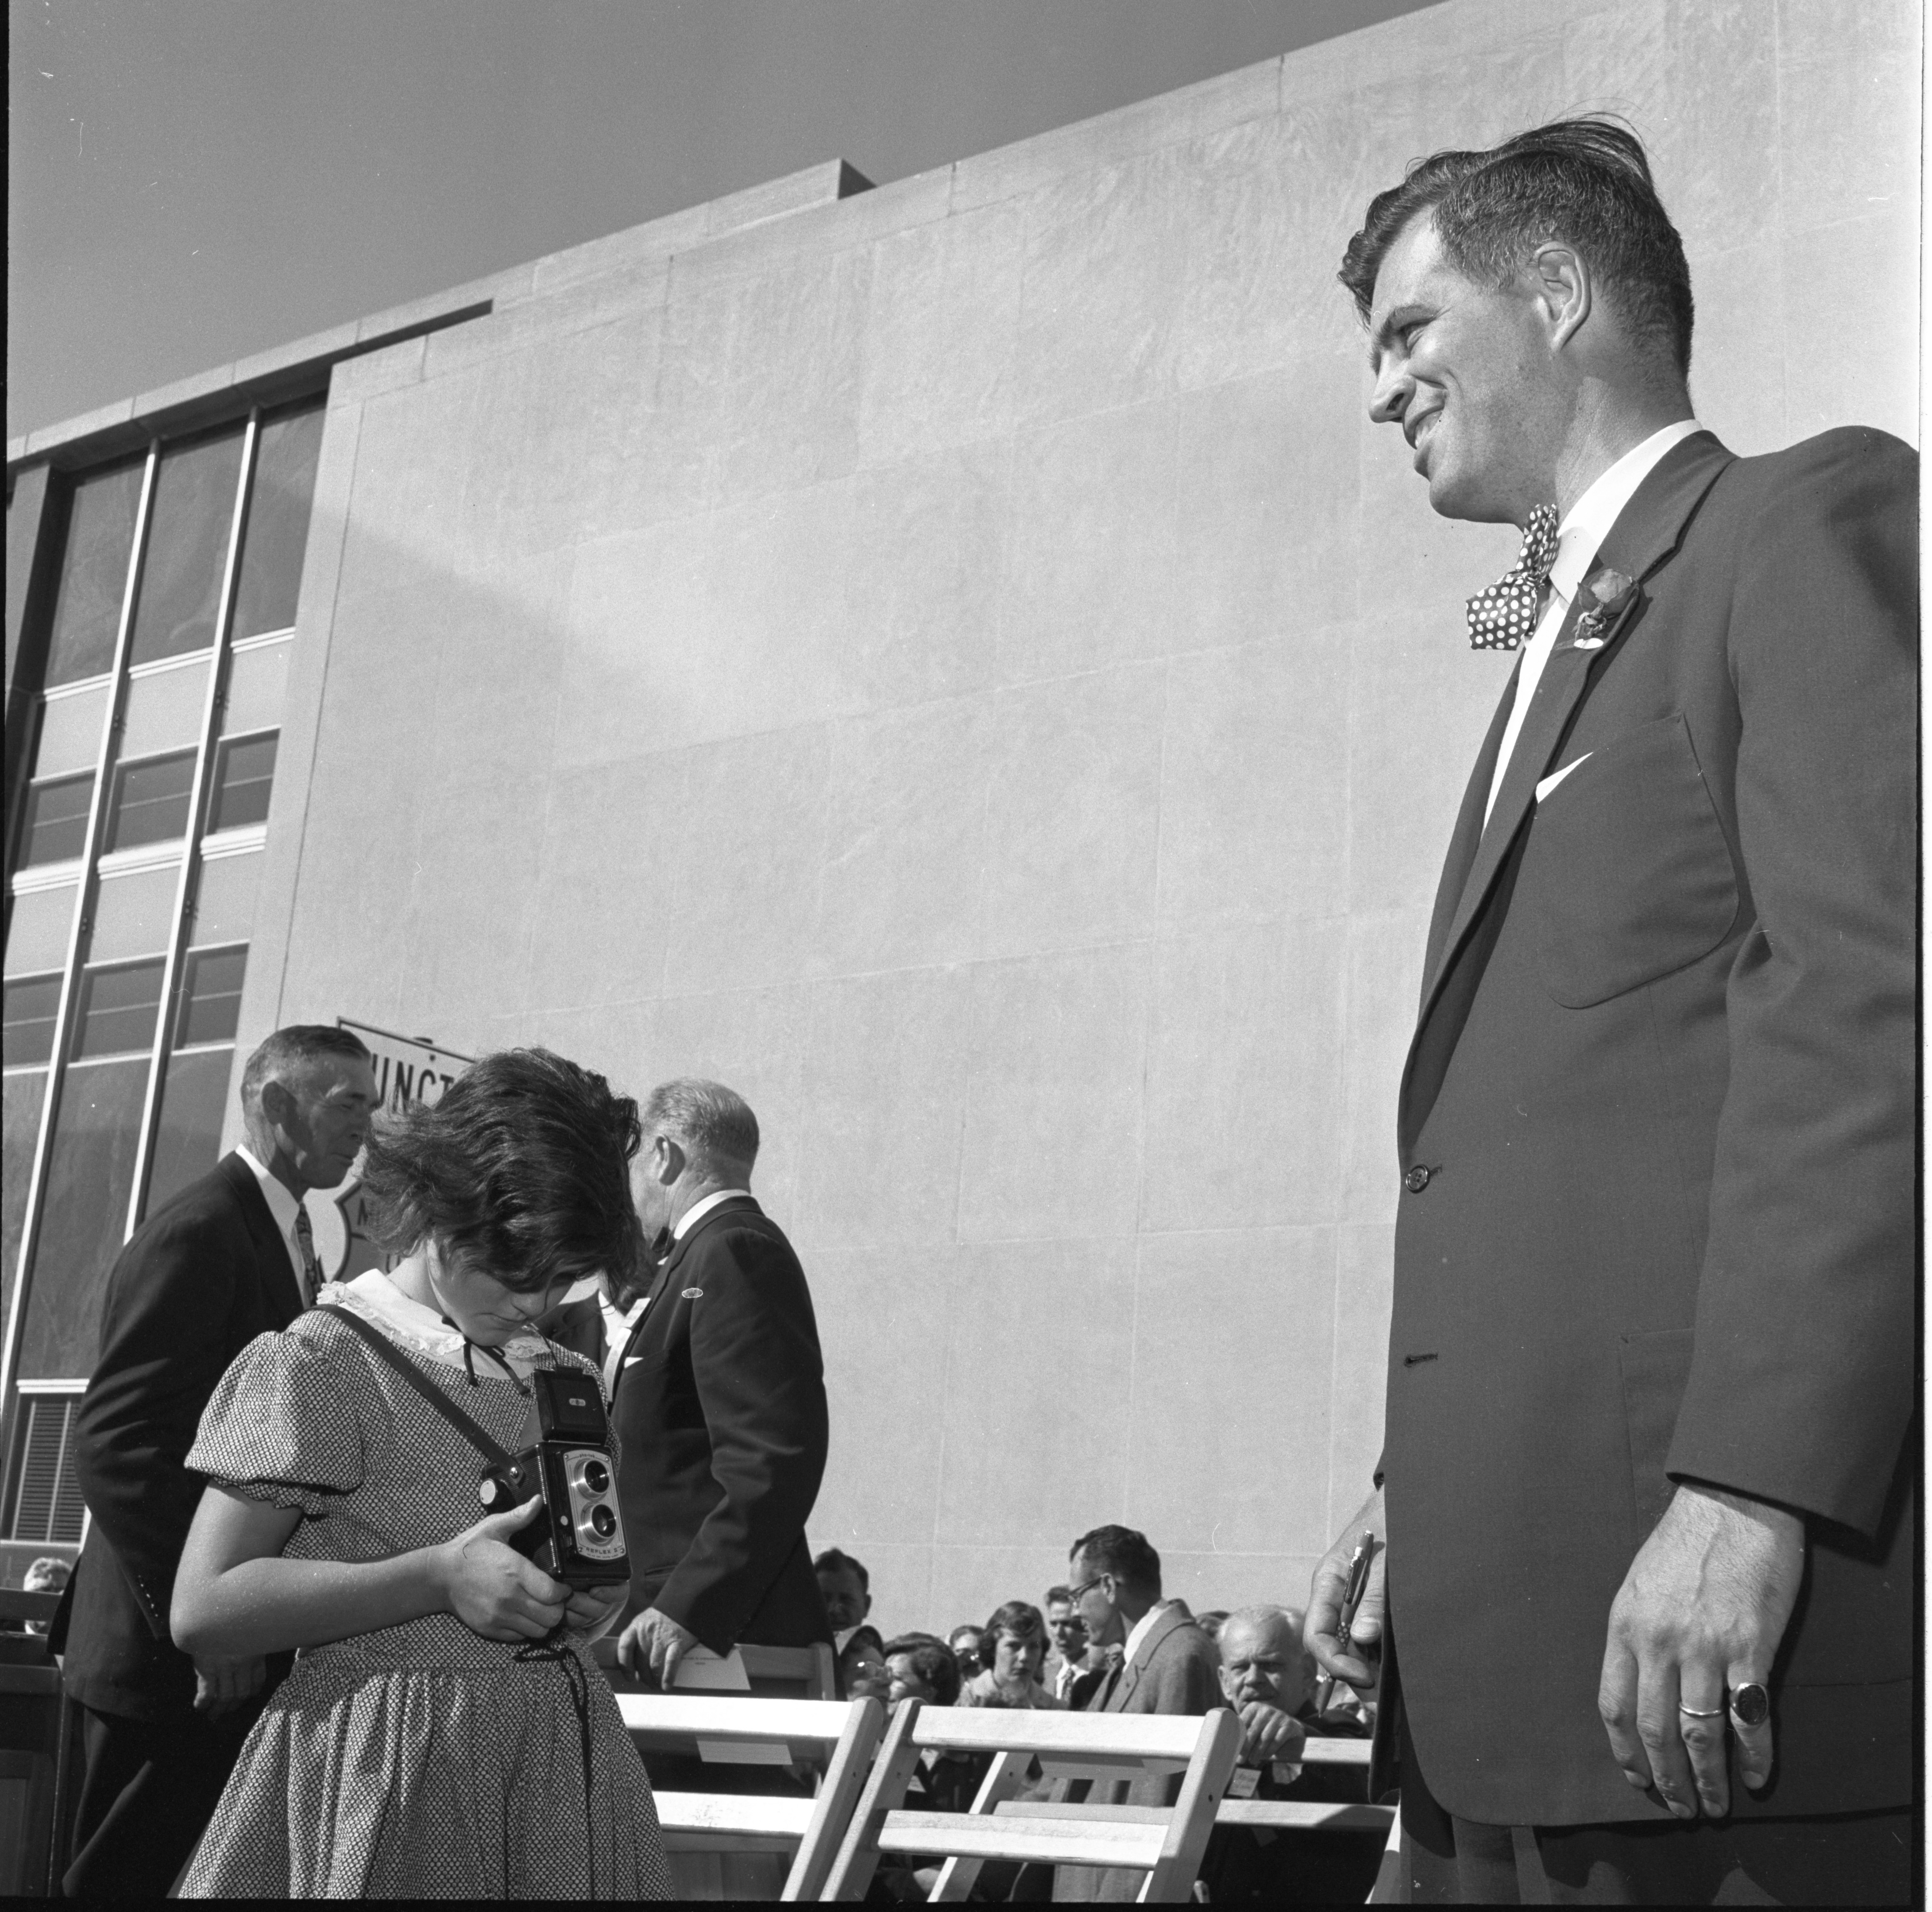 A Child Snaps A Photo Of Gov. G. Mennen Williams At The Washtenaw County Building Dedication Ceremony, October 1956 image